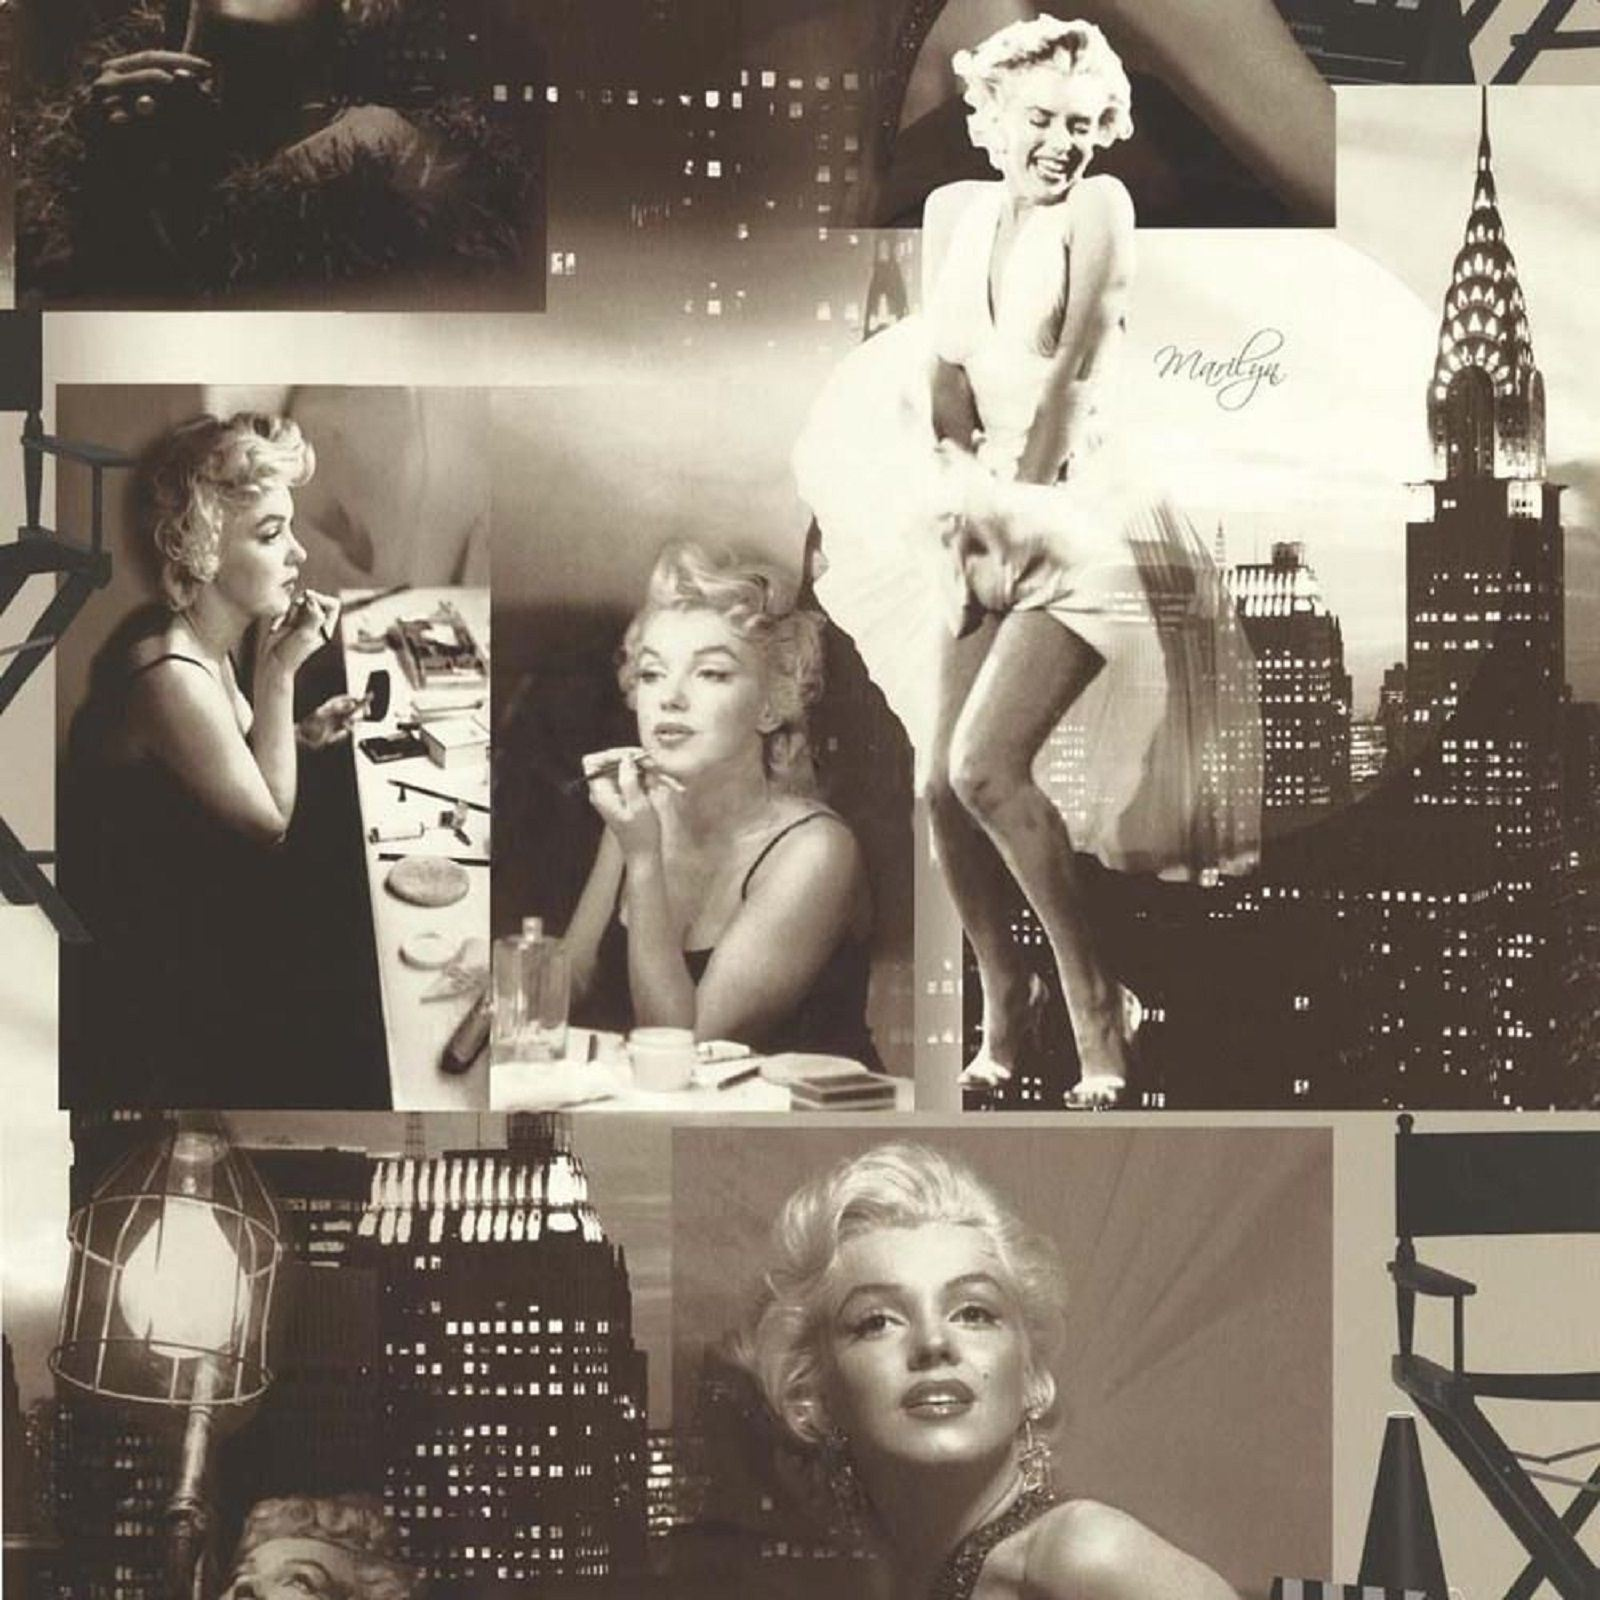 Black White Marilyn Monroe Wallpaper Photos Collage New York City